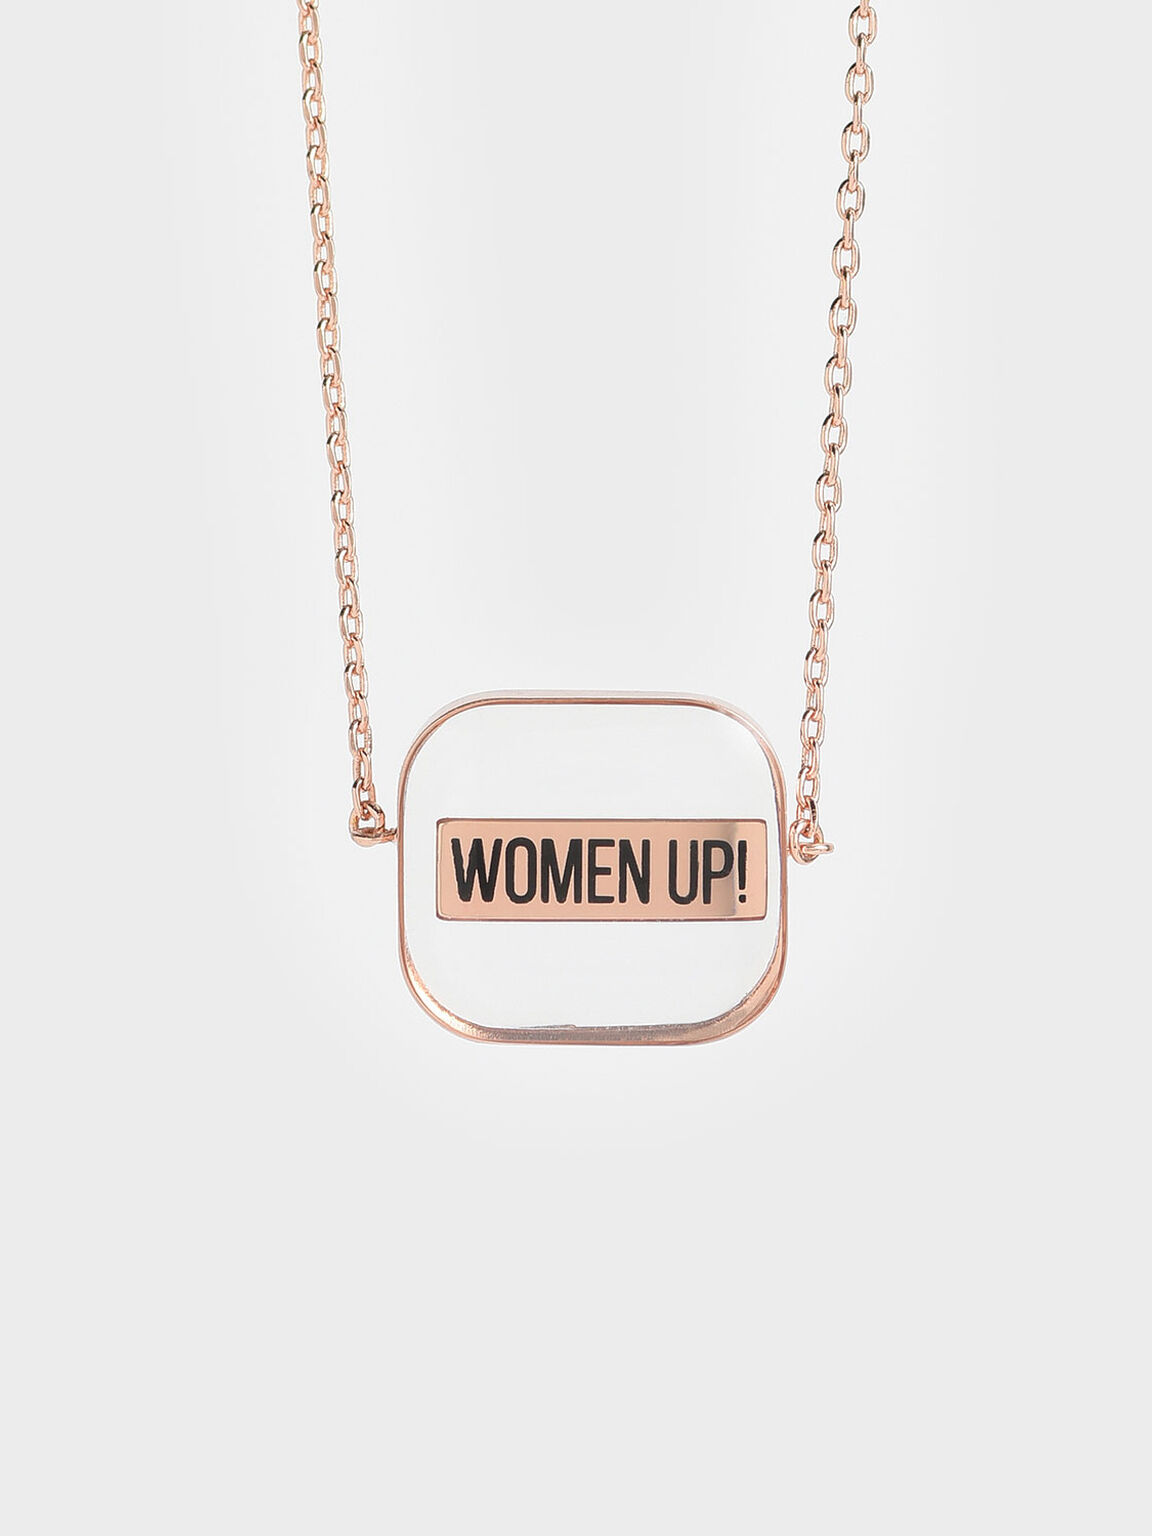 "WOMEN UP!"" Acrylic Necklace"", Rose Gold, hi-res"